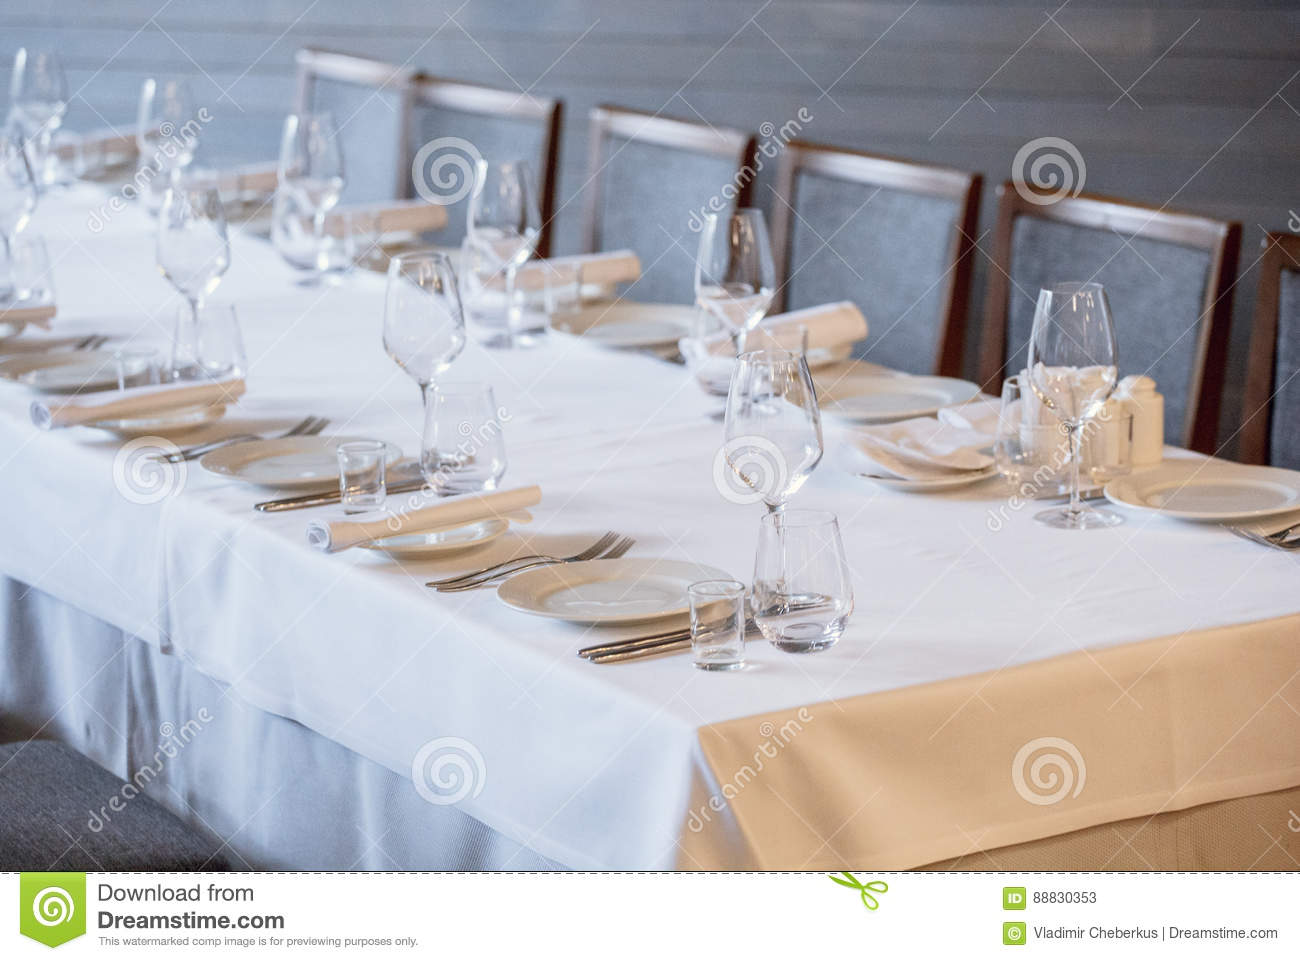 Table setting in a restaurant. Cutlery 100